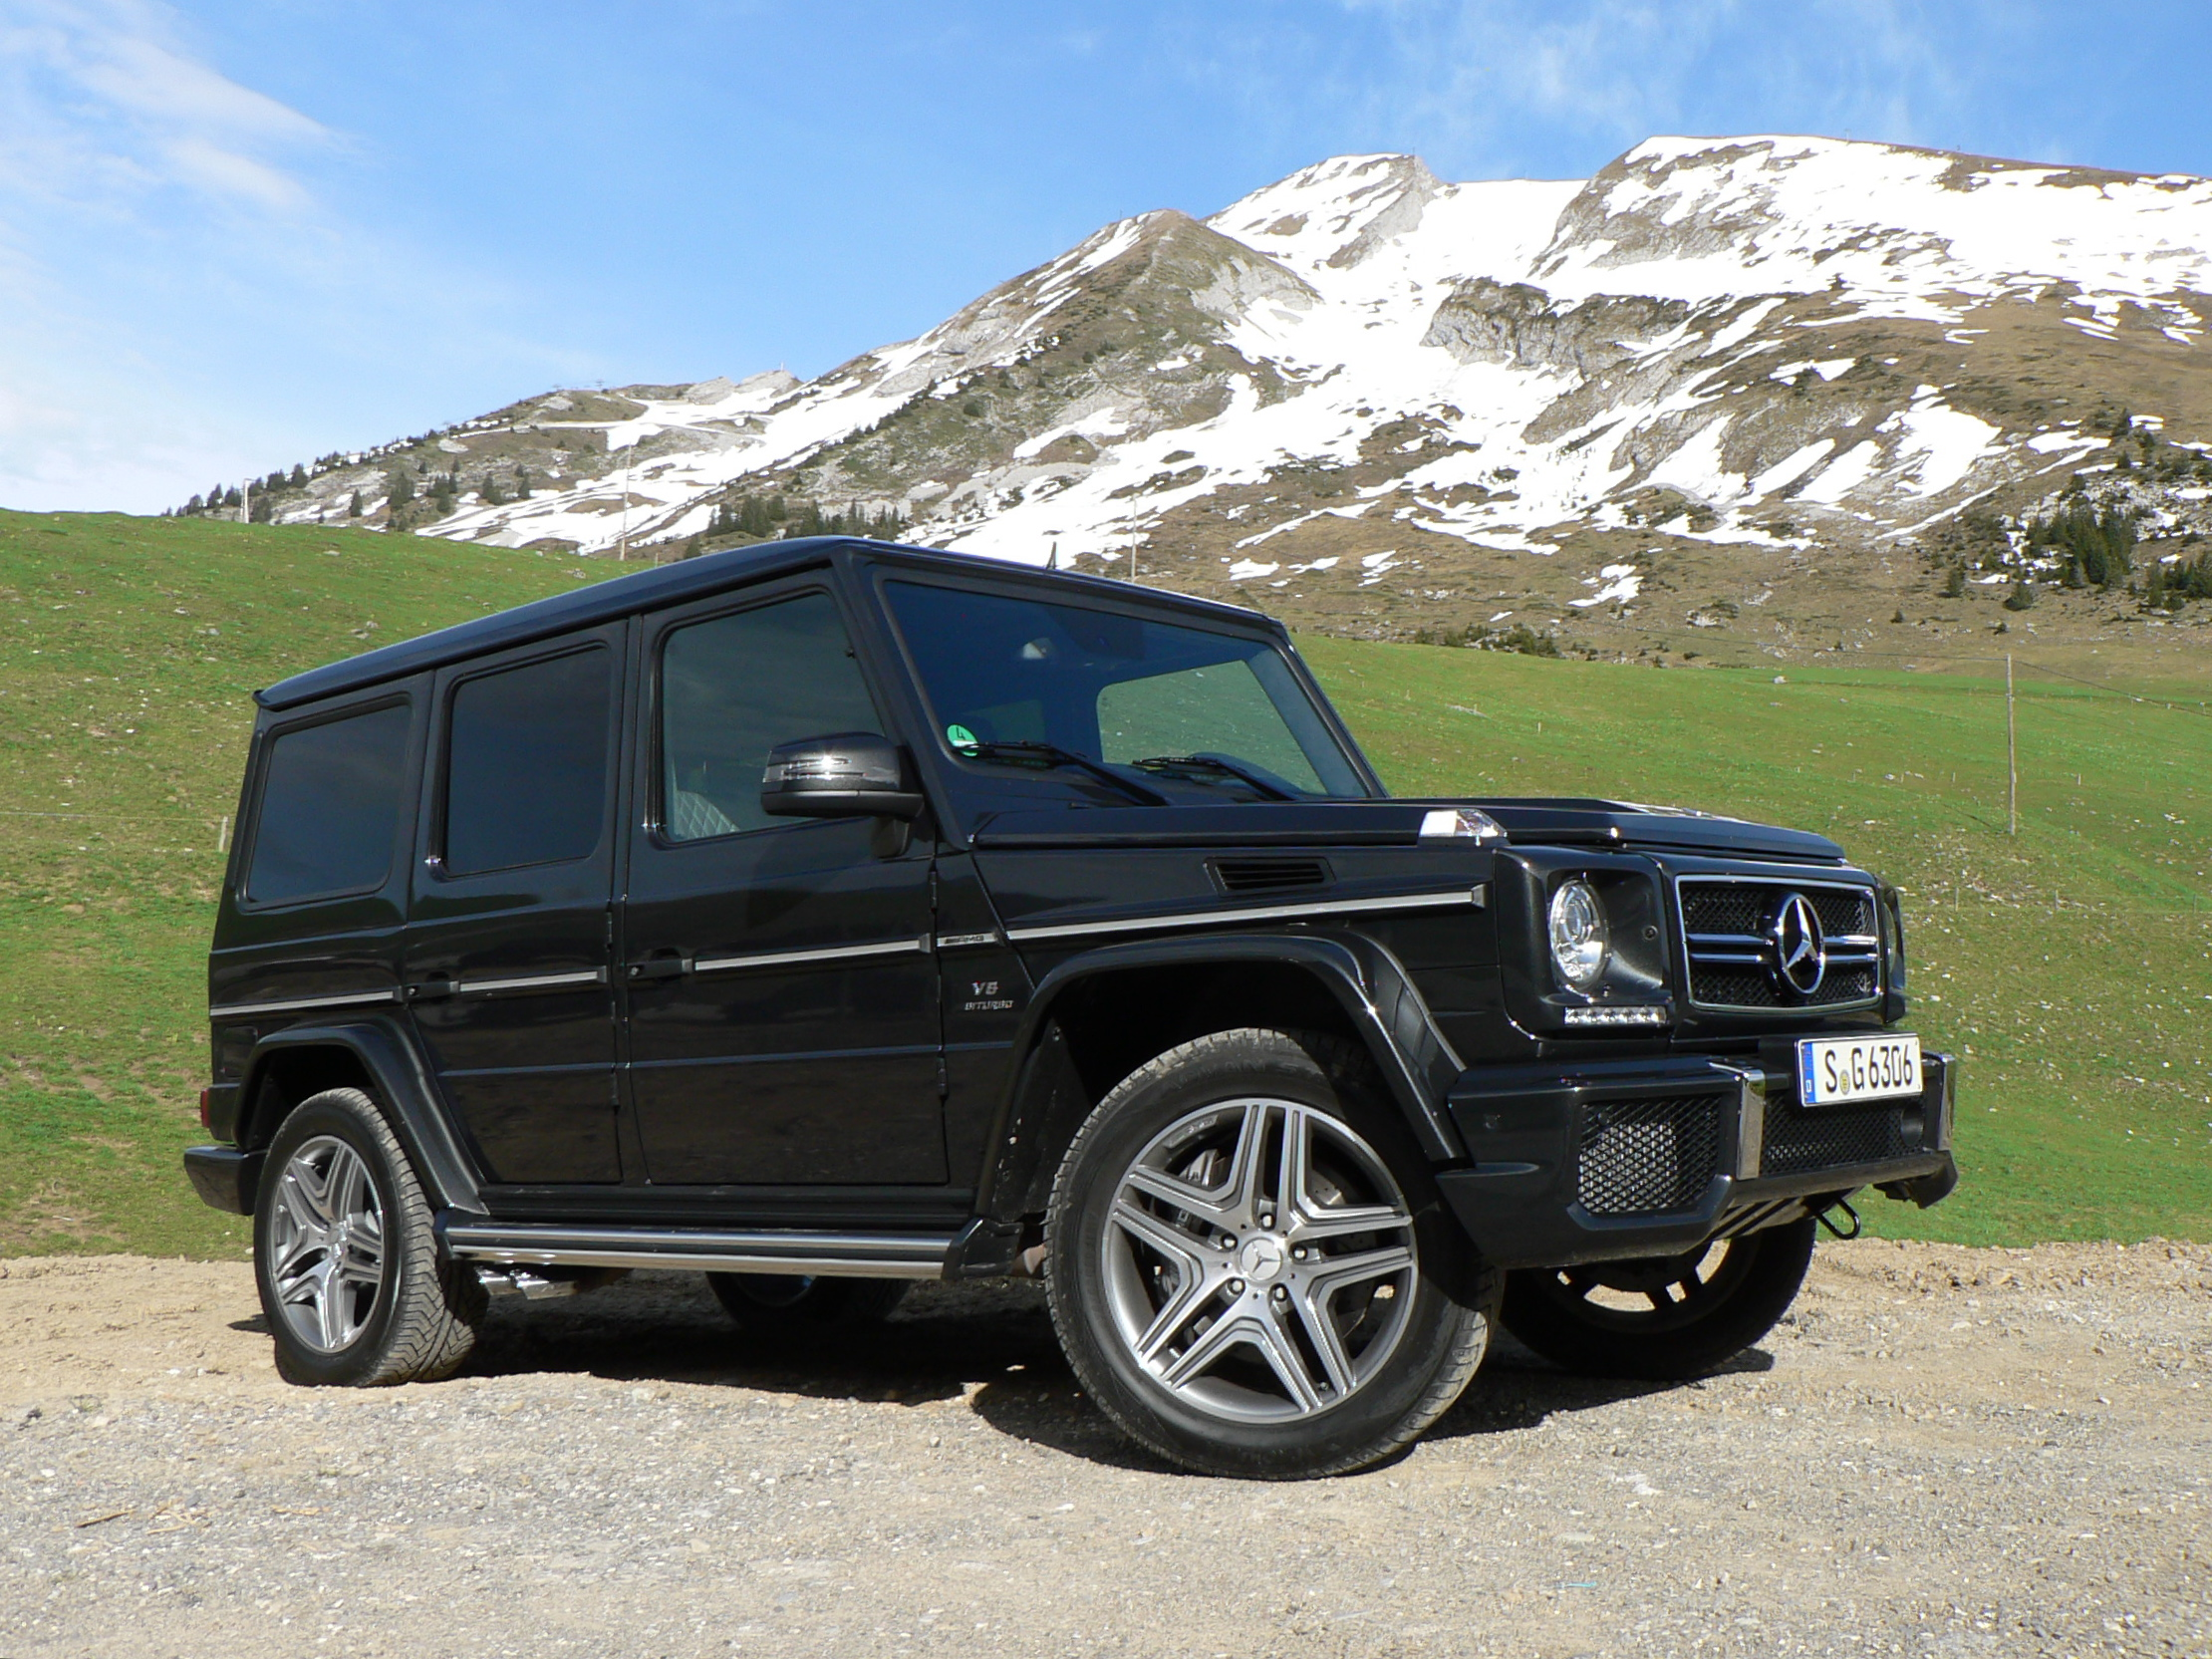 2013 mercedes benz g550 g63 amg what i liked cult like status rock solid chassis what i didnt drives like it was designed in 1979 oh yeah it was - 2013 Mercedes Benz G550